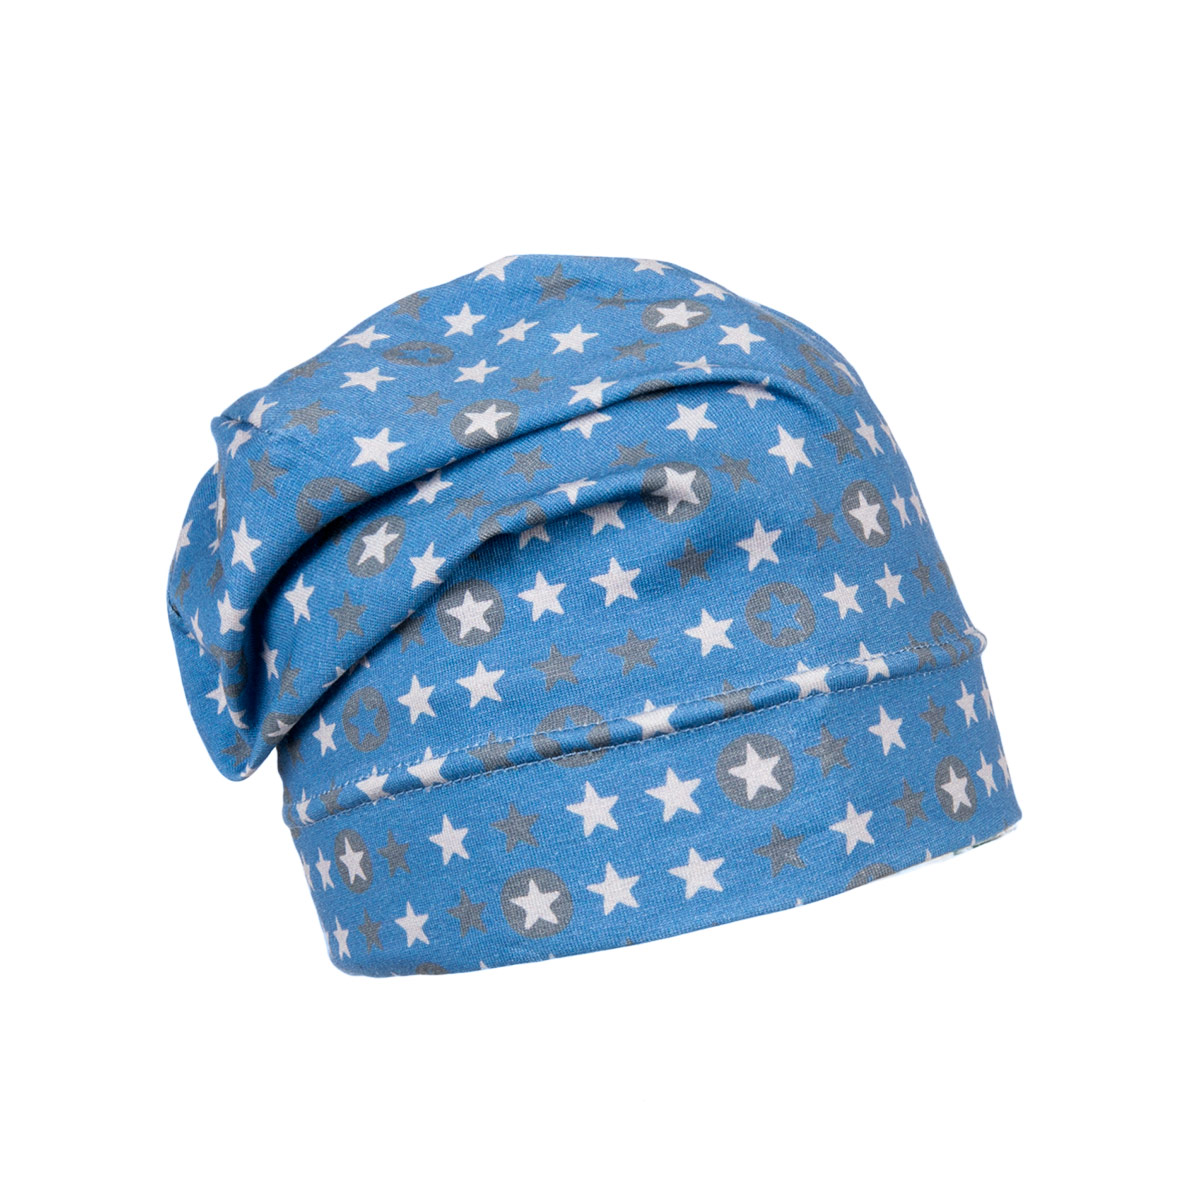 beanie for children with stars in cotton by STERNTALER 1ee58779e46